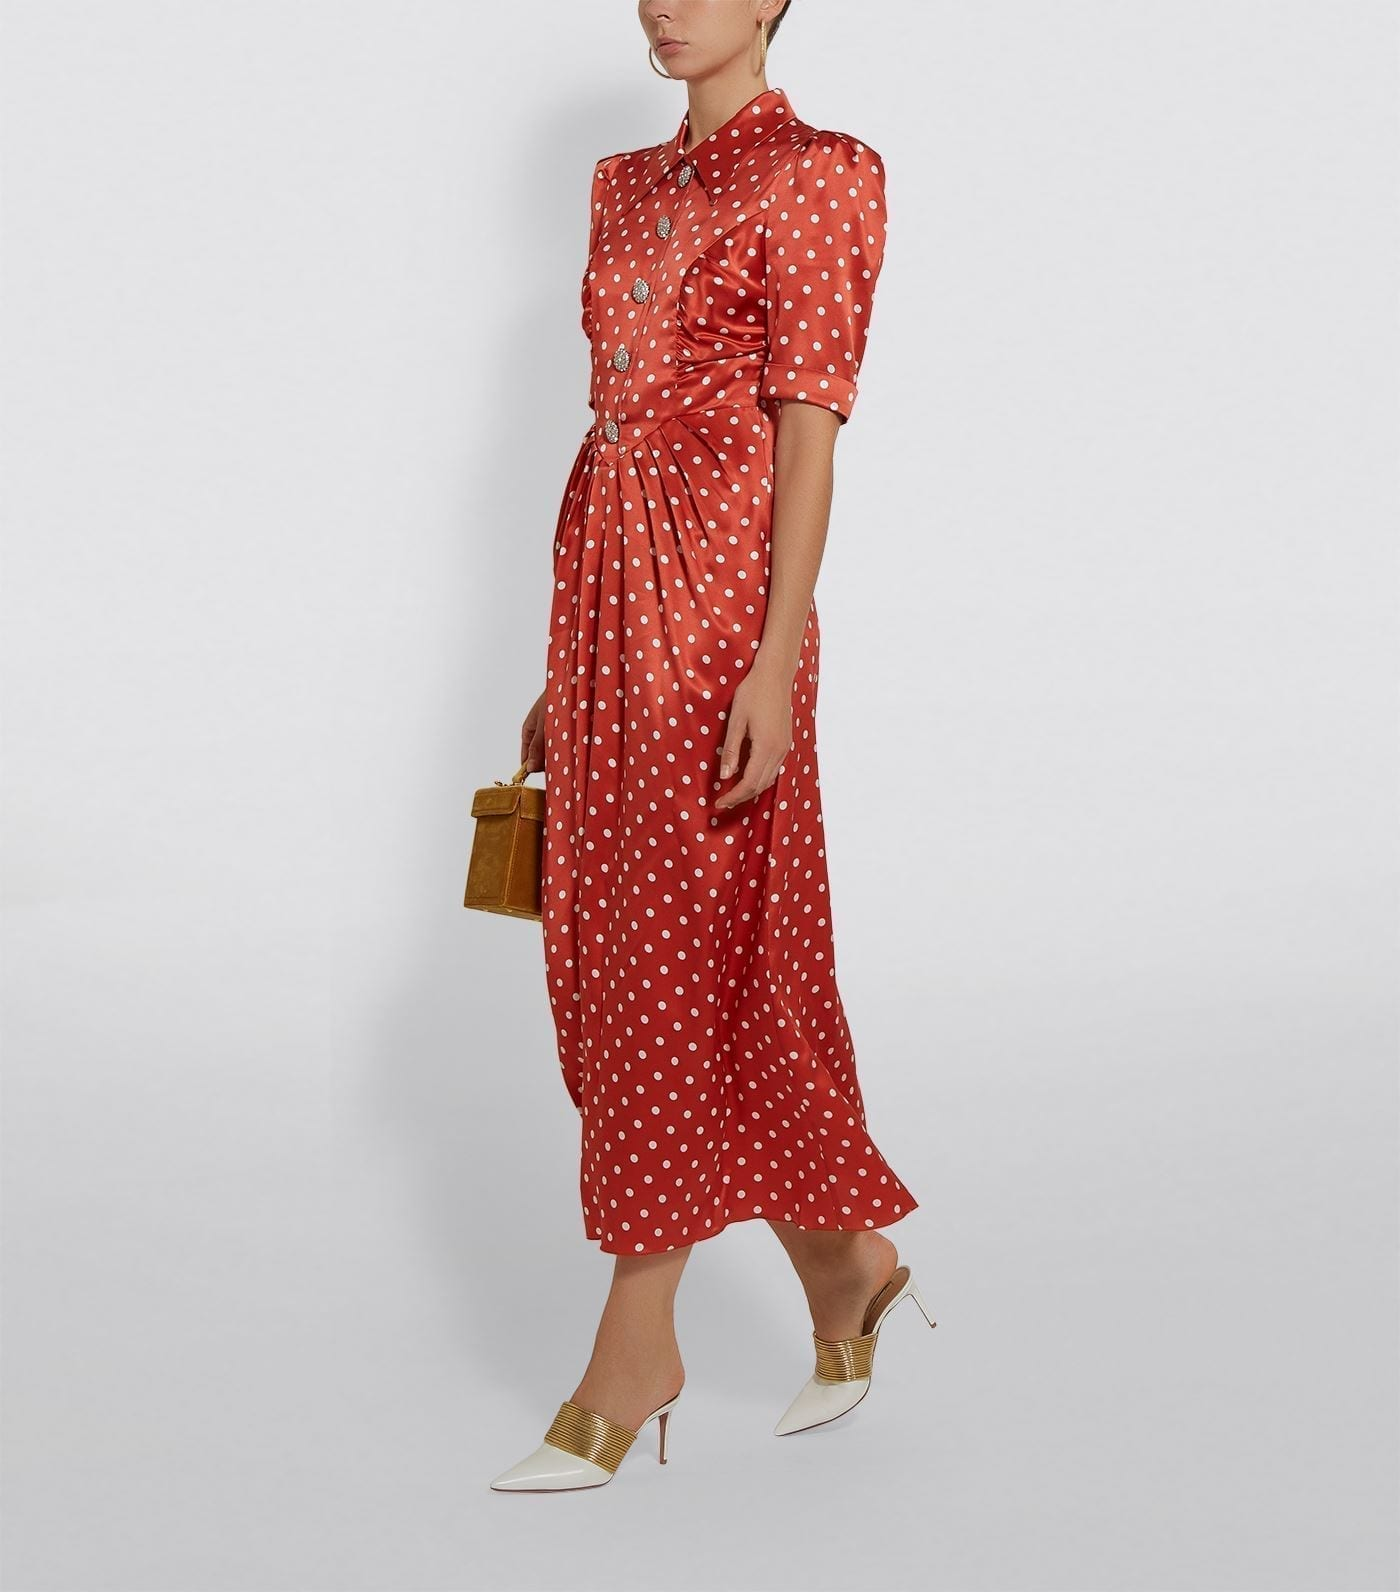 ALESSANDRA RICH Silk Polka Dot Midi Dress